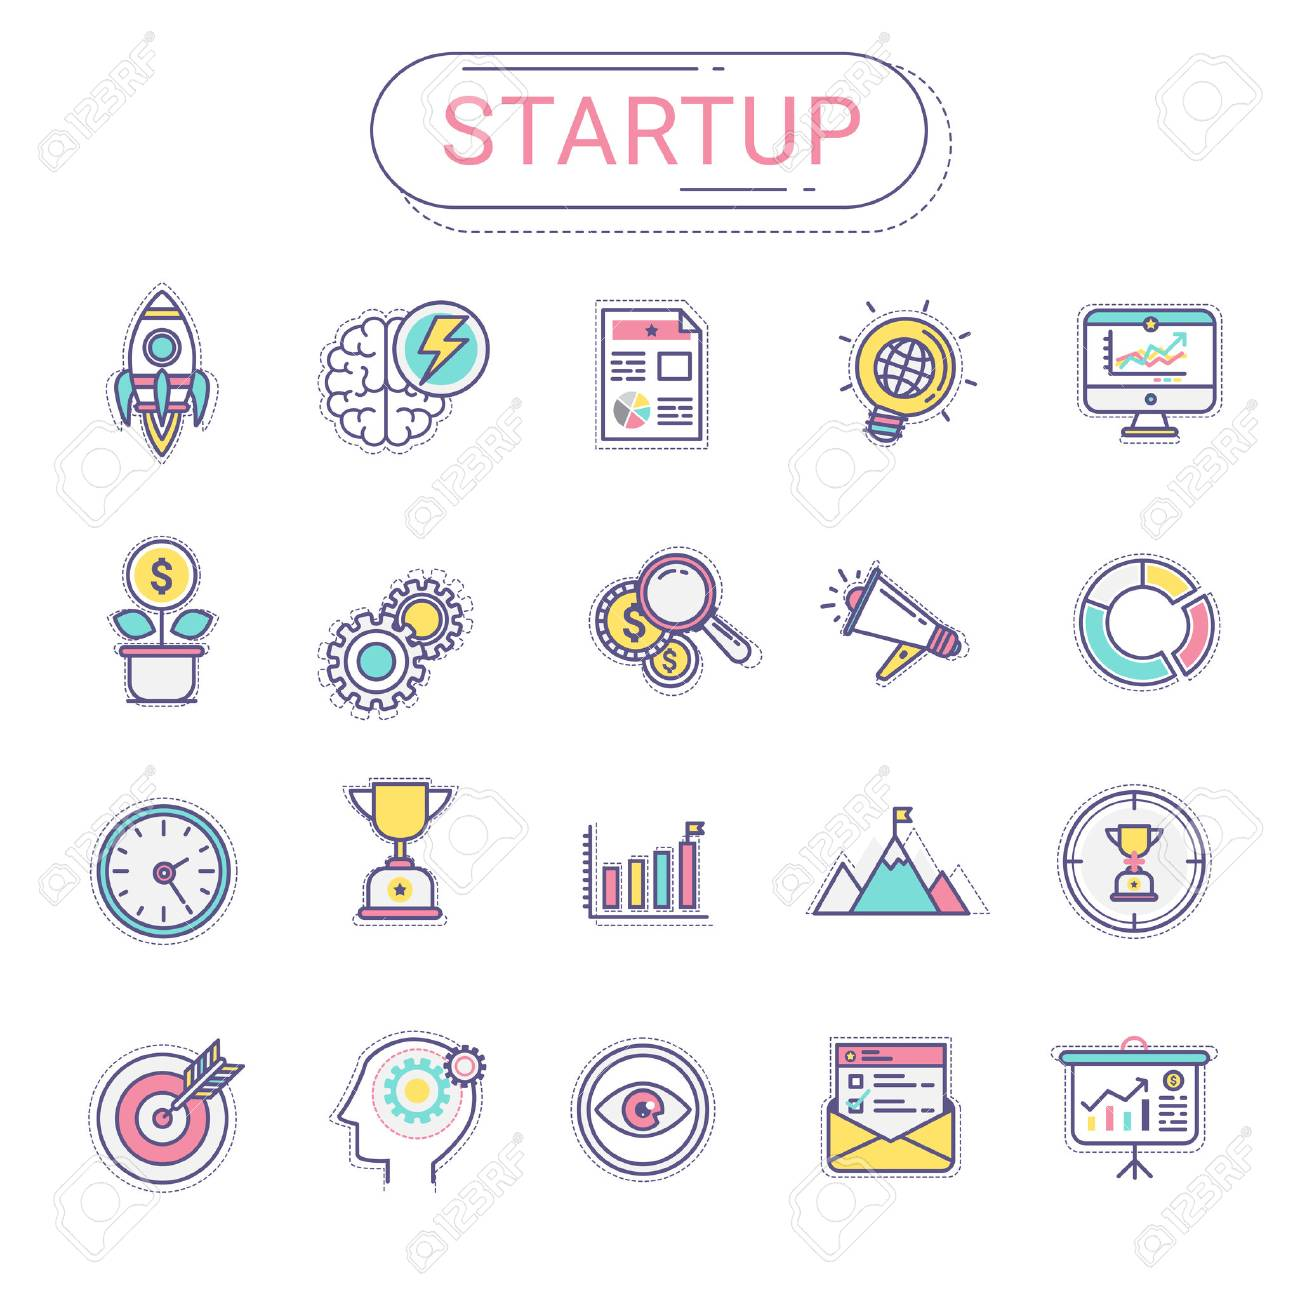 startup icons set of new business icons contains rocket icons